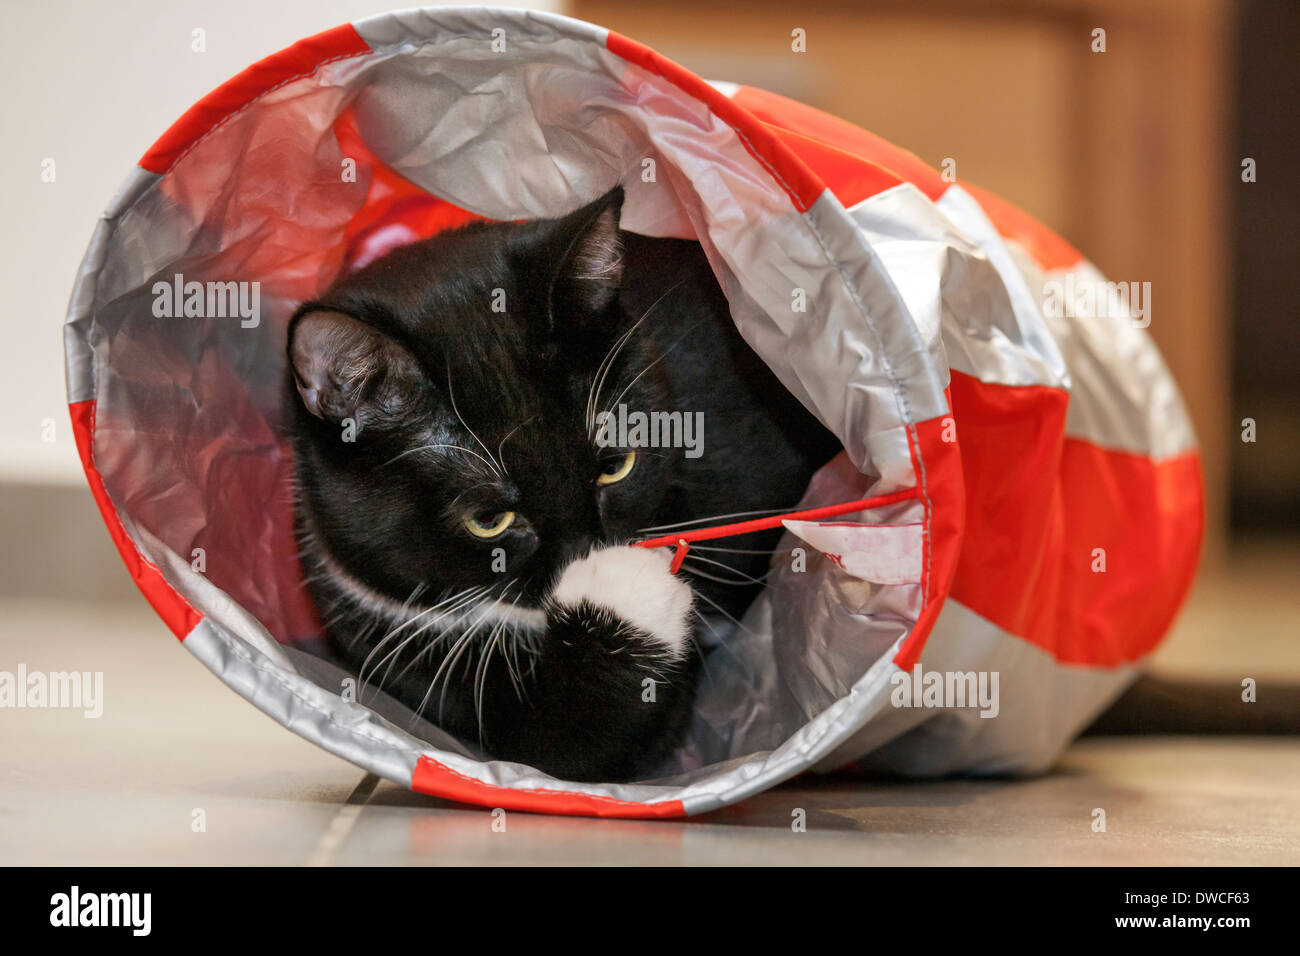 Close up of tuxedo cat, bicolor domestic cat with a white and black coat playing inside bag toy - Stock Image